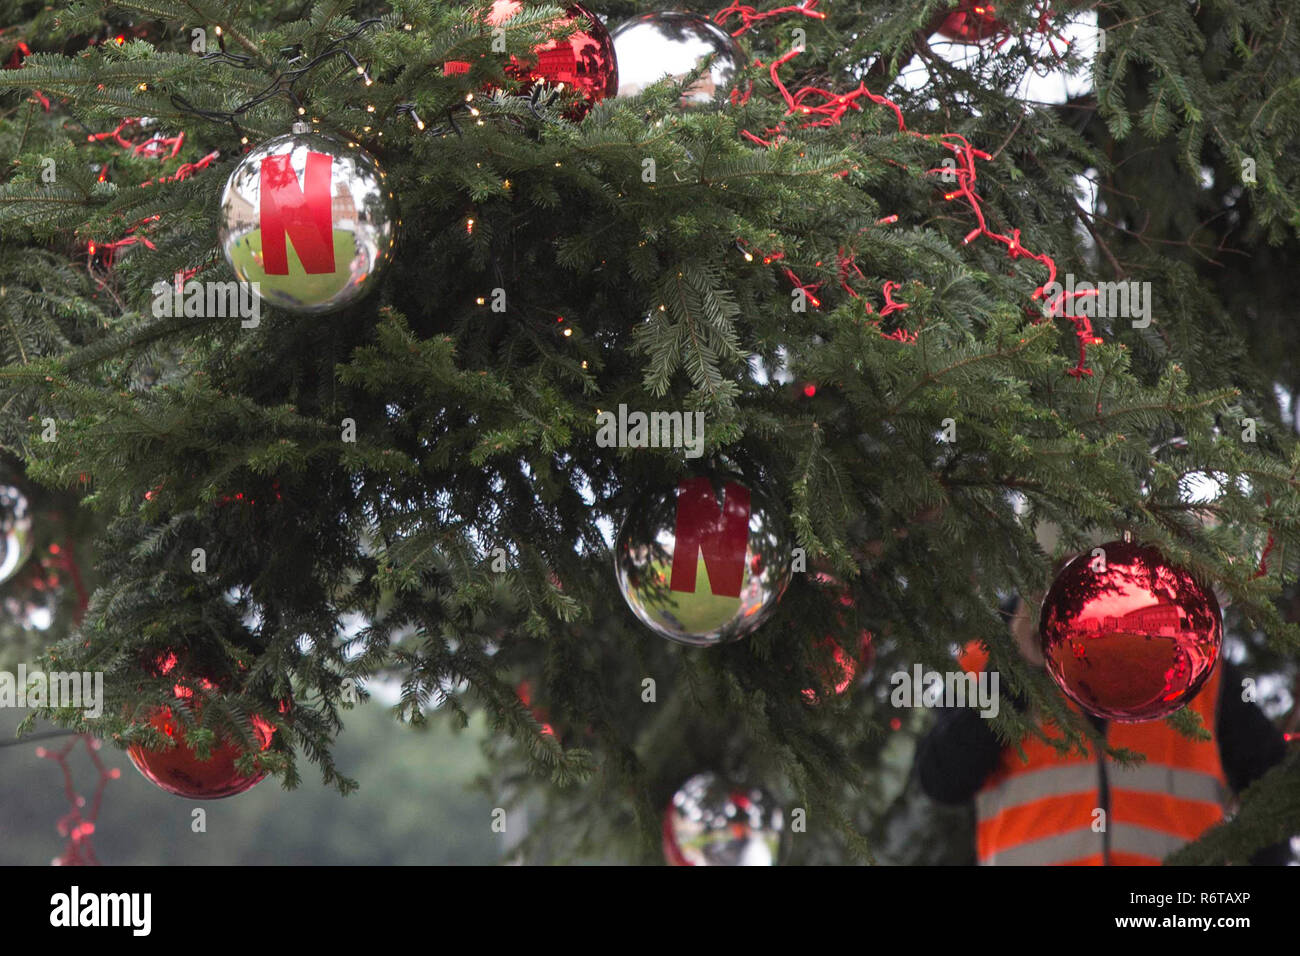 Albero Di Natale Washington Deluxe.Page 3 11 12 06 High Resolution Stock Photography And Images Alamy